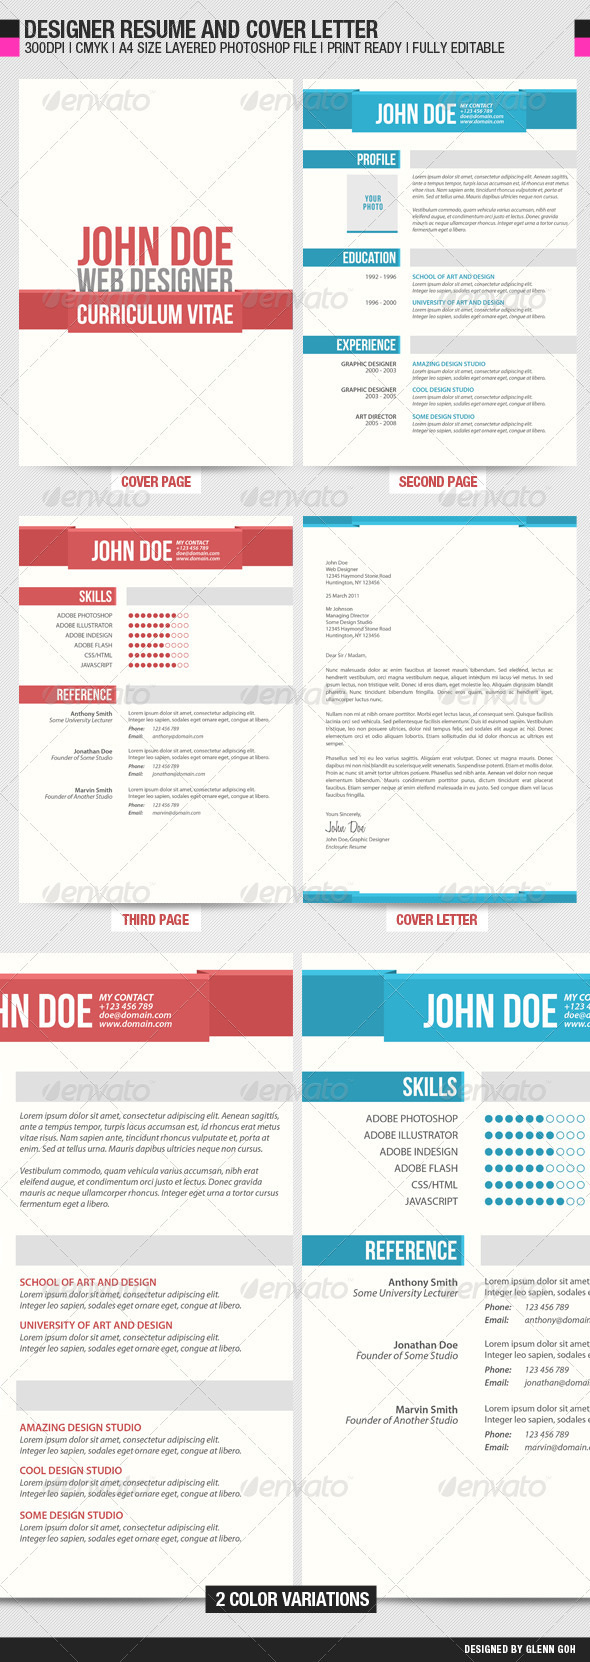 GraphicRiver Designer Resume and Cover Letter 542149